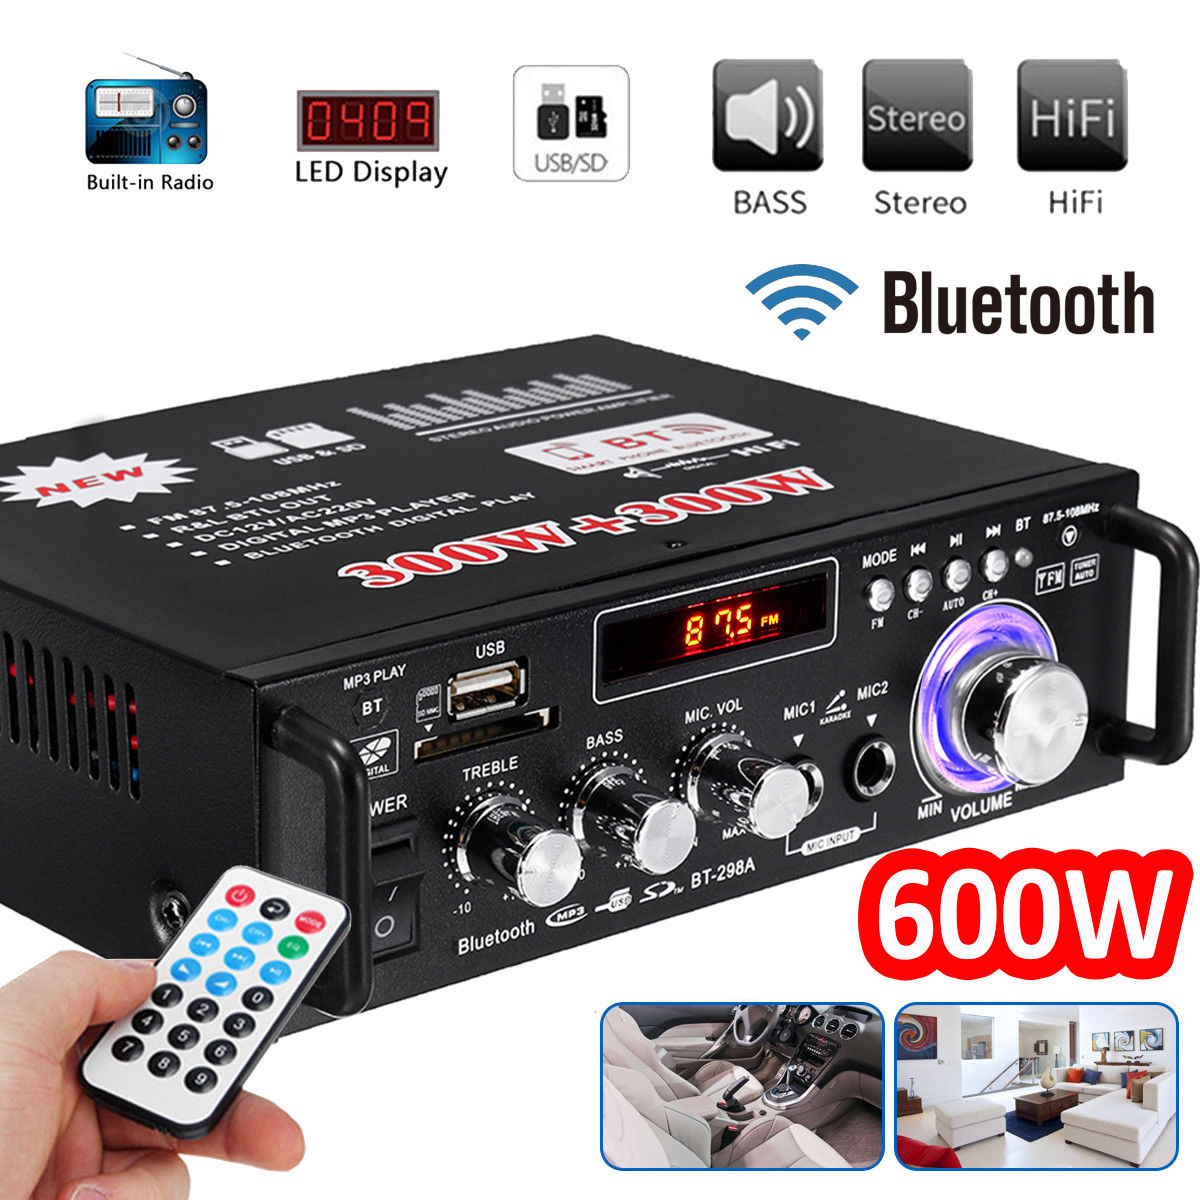 600W 220V/110V Amplifiers Amplifier Audio Amplifier Bluetooth Subwoofer Mini Amplifier Home Theater Sound System Equalizer